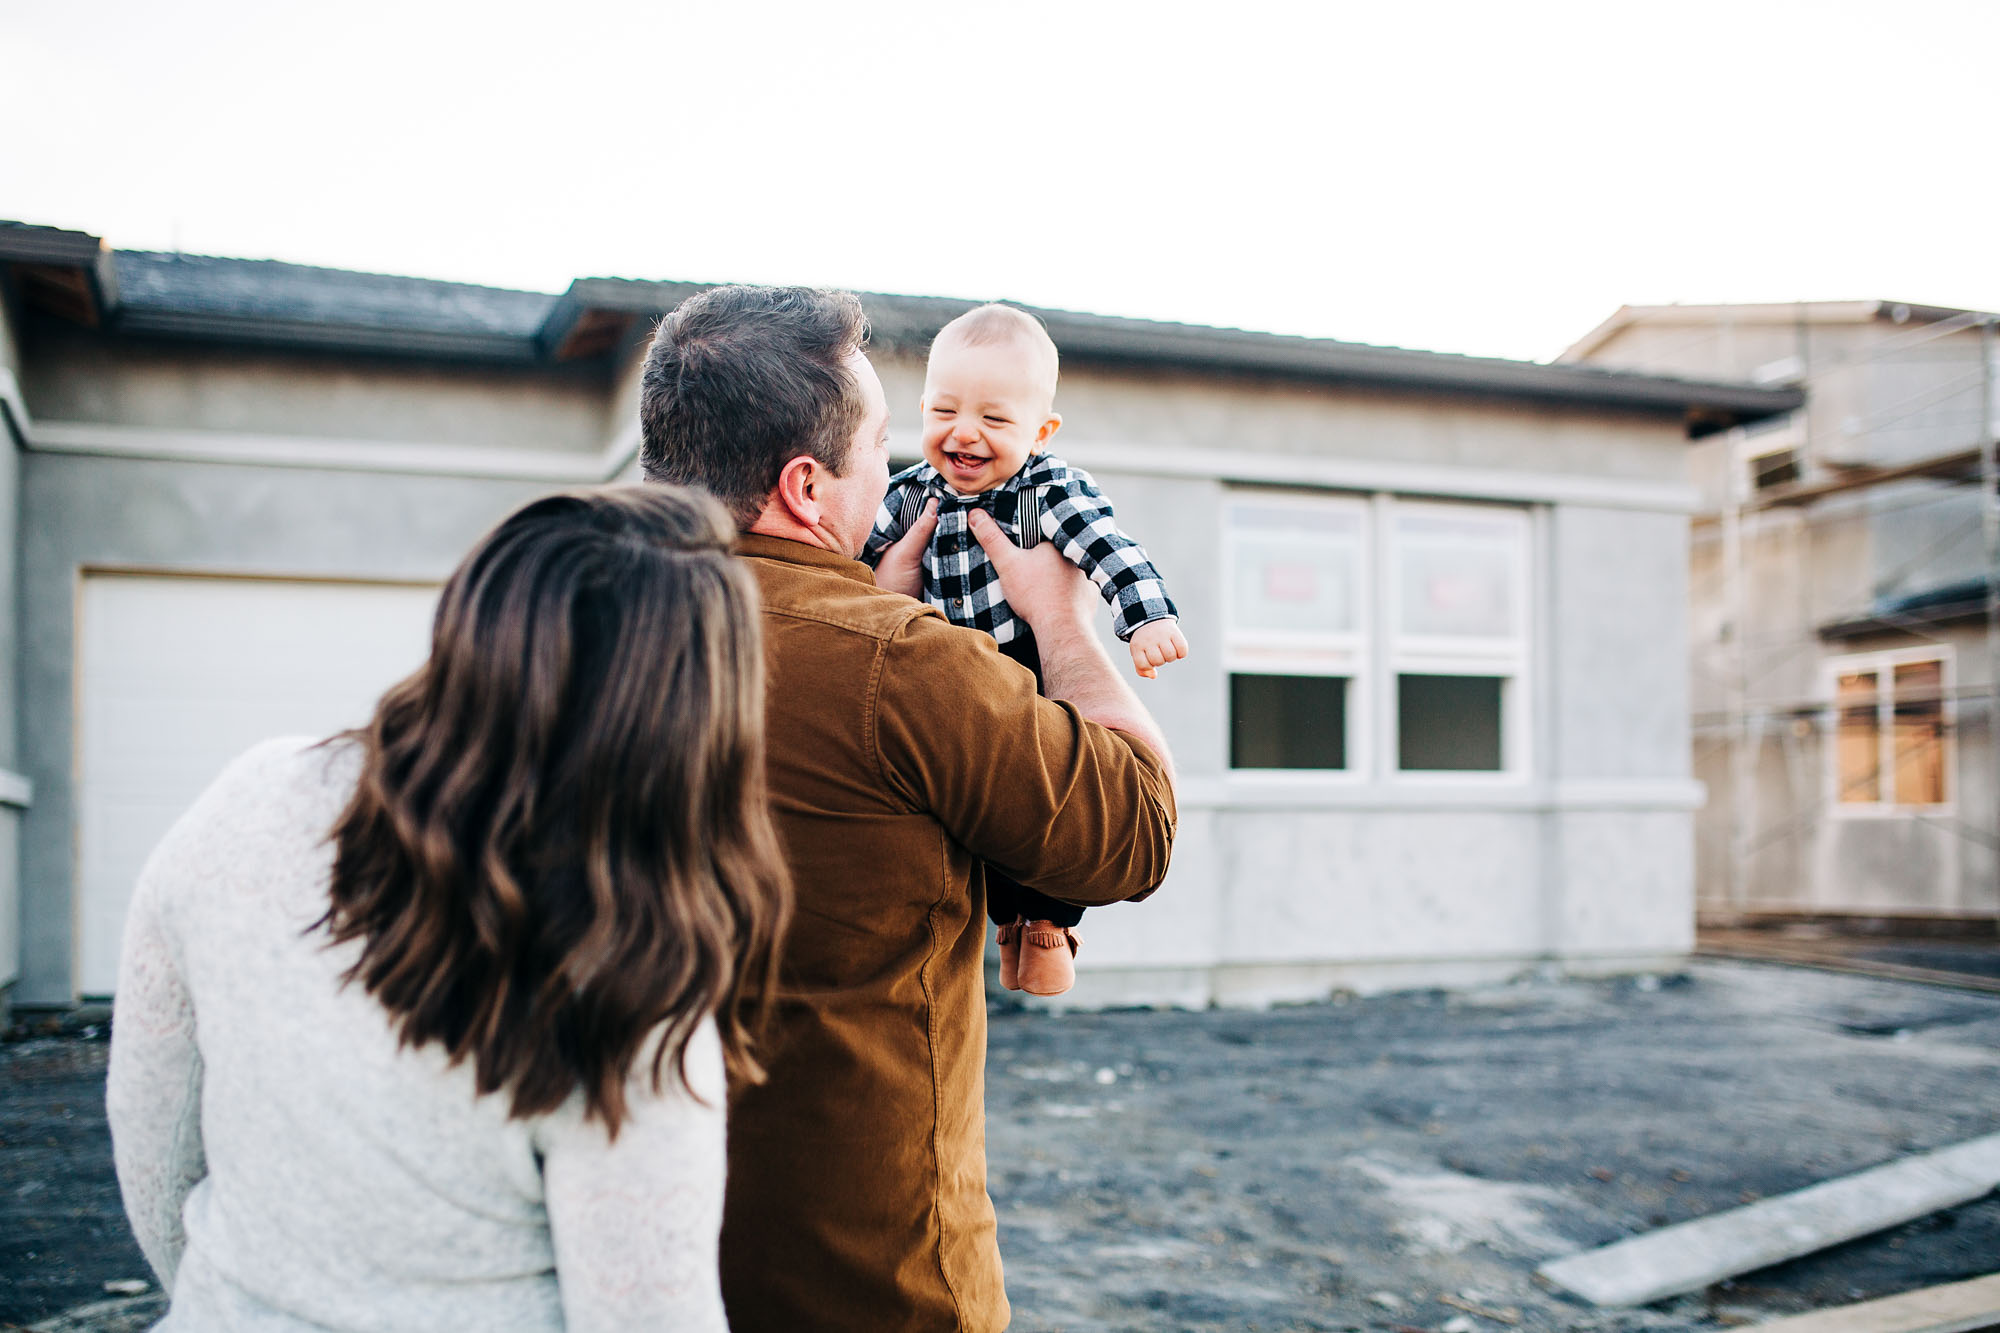 A father lifts up his happy baby boy as they stand in front of their new house during a lifestyle family photo session with Amy Wright Photography, based out of Roseville, California.